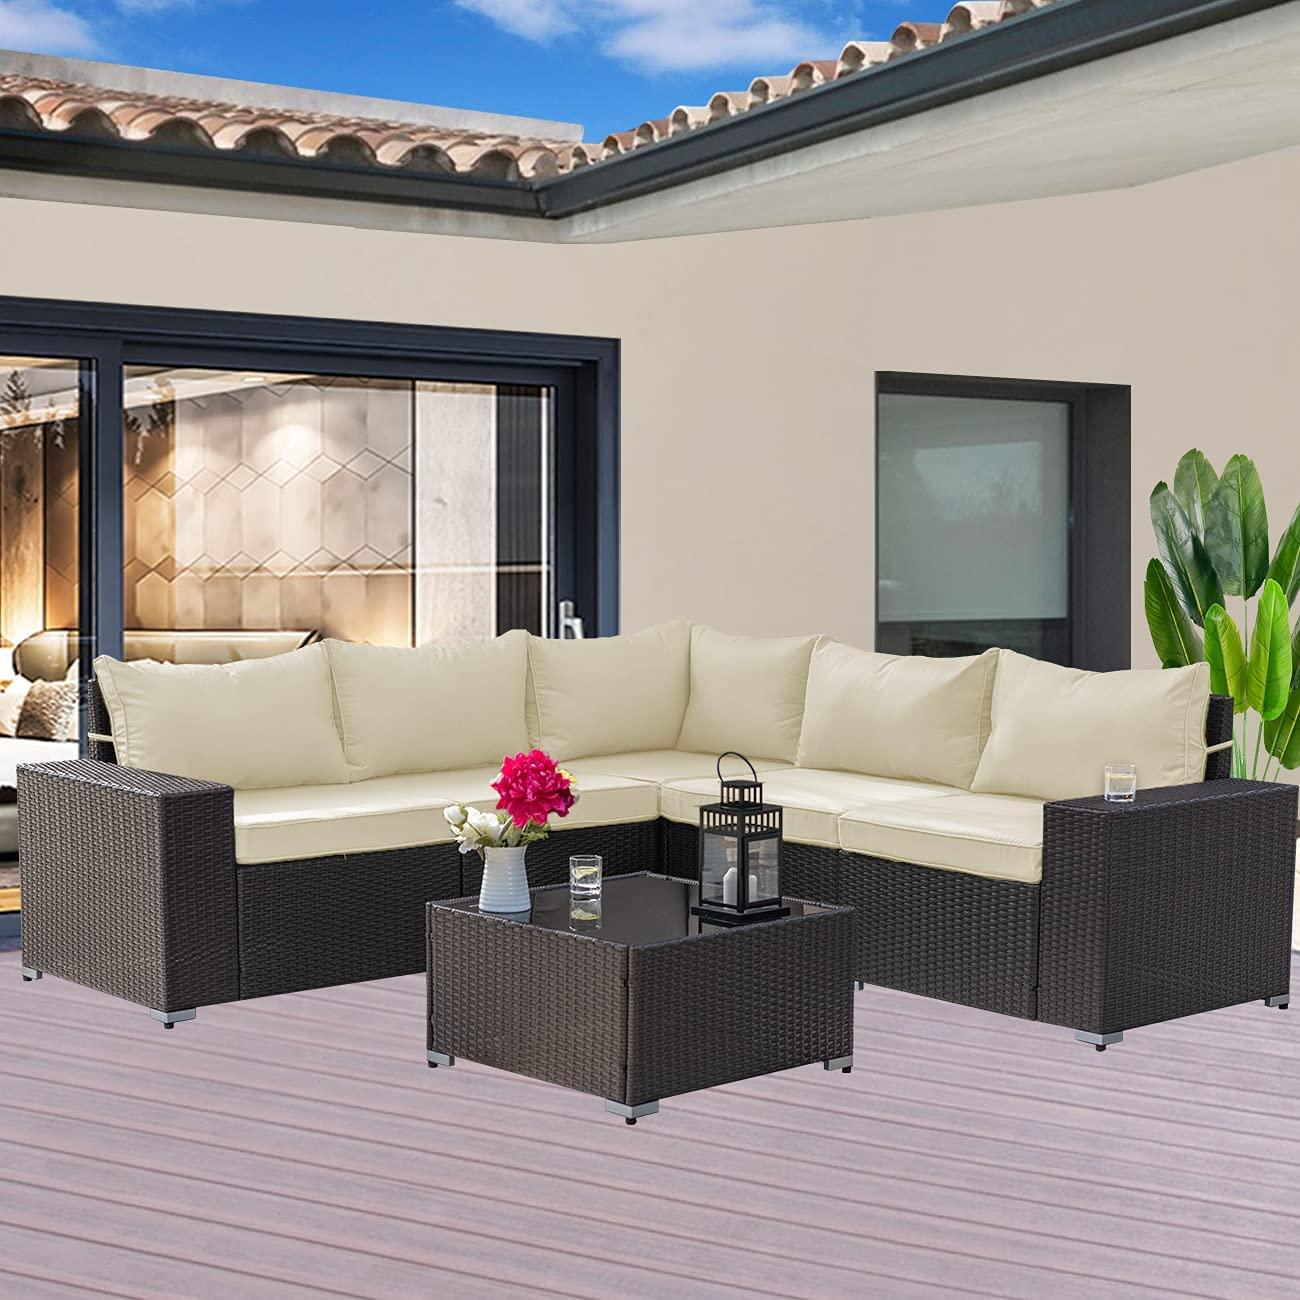 Gotland Outdoor Patio Furniture 6 Piece Patio Sofa Sets All-Weather Outdoor Sectional Furniture PE Wicker Backyard Deck Couch Conversation Chair Set with Coffee Table & 5 Thickened Cushions (Cream)